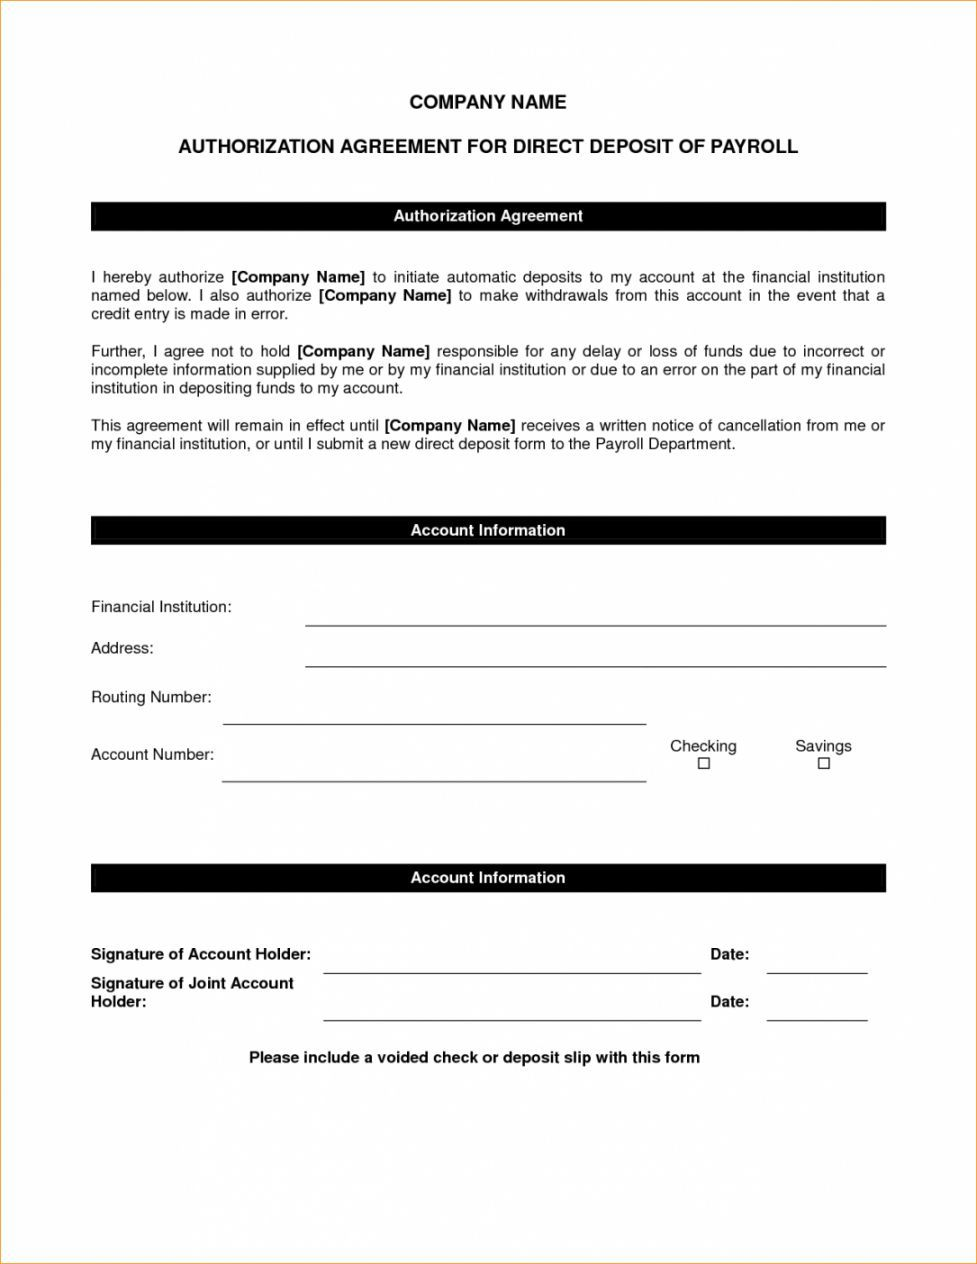 006 Unbelievable Direct Deposit Agreement Authorization Form Template Photo Full